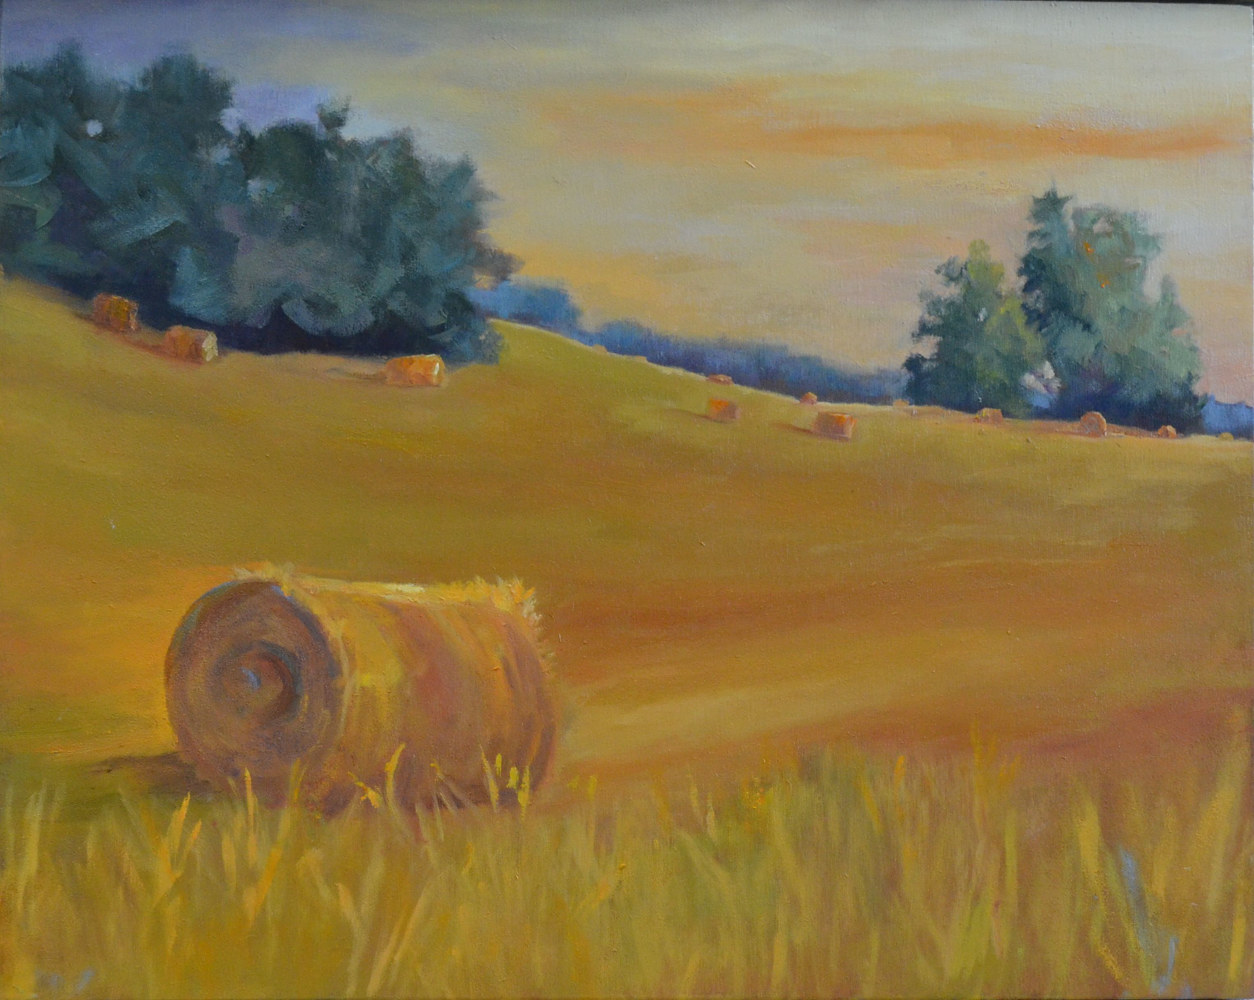 Away From the Crowd ll; 16 x 20; oil on cradled wood gallery panel - 08-0218 by Patricia Savoie